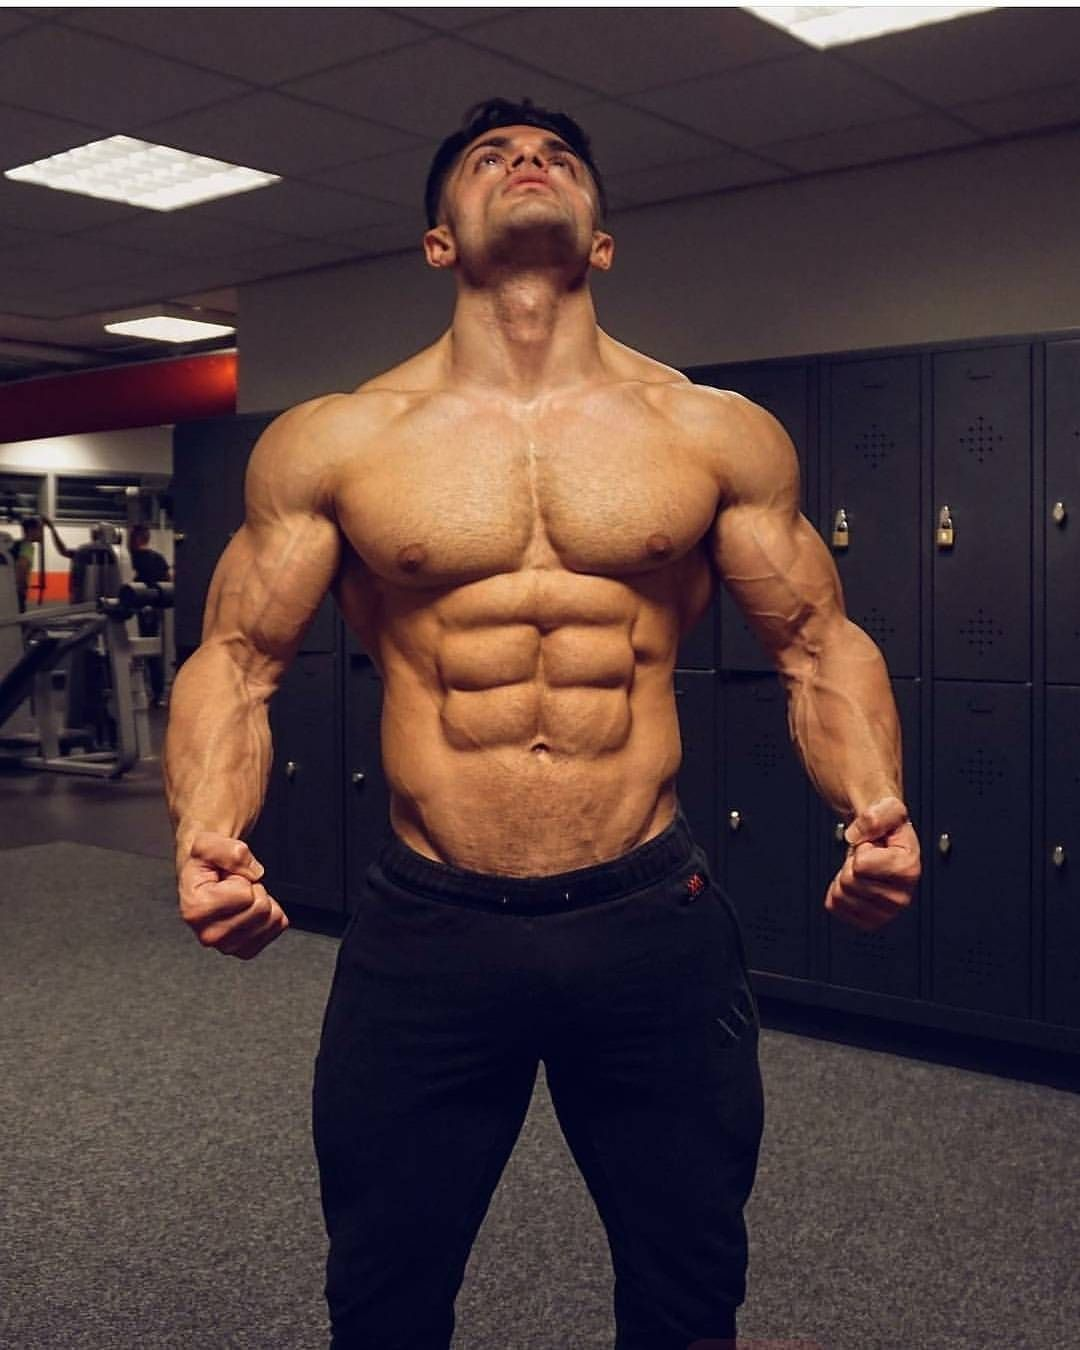 Buy Steroids Online Anabolicenergy Bodybuilding Steroids